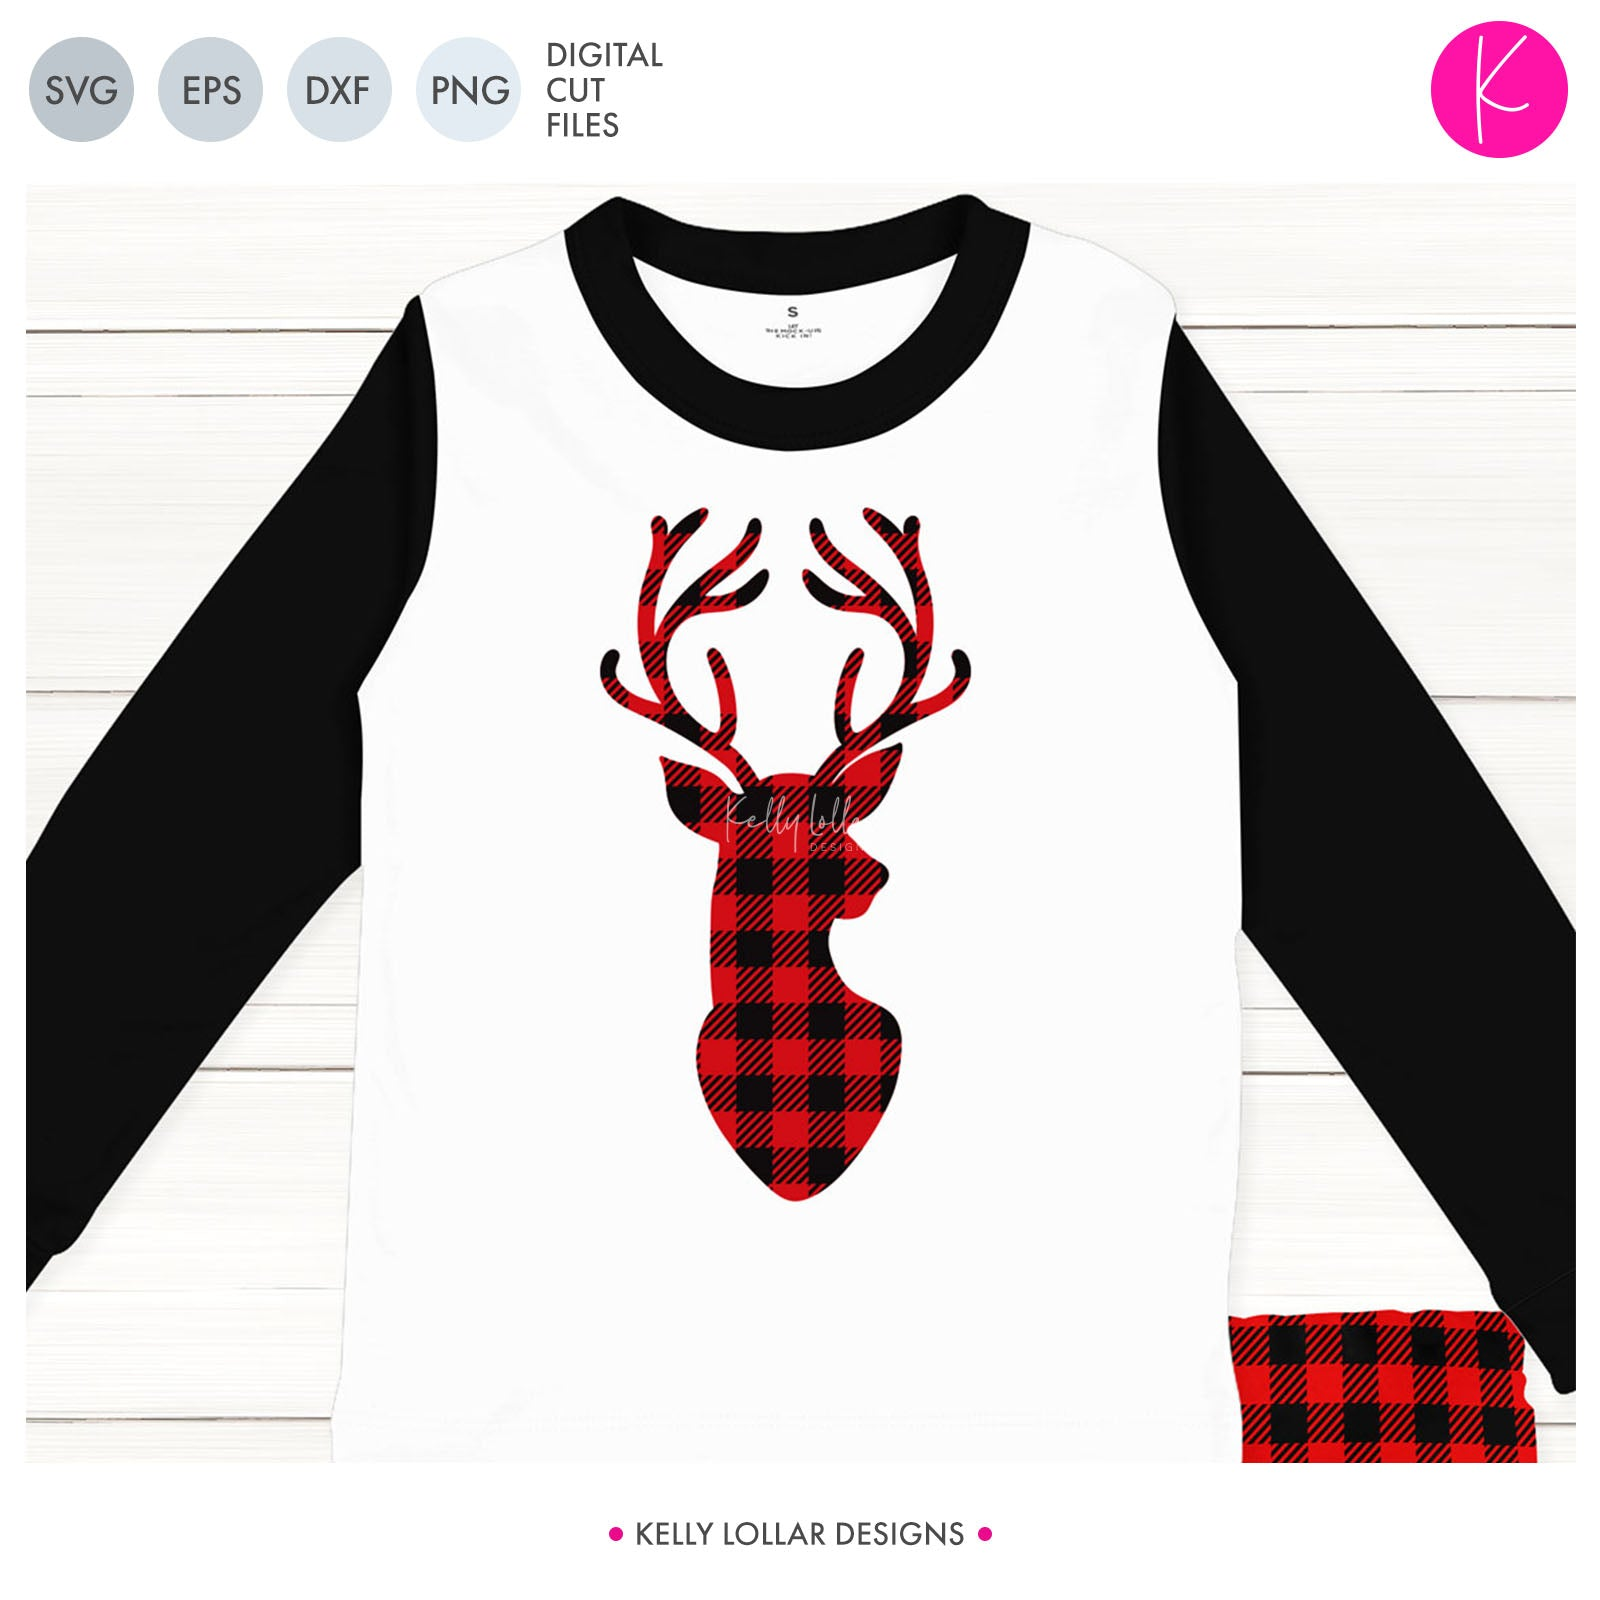 Buffalo Plaid Deer Bust | SVG DXF EPS PNG Cut Files Antlered Deer Bust with Buffalo Plaid Pattern Layer and Optional Bow for Christmas Shirt and Decor | SVG DXF PNG Cut Files 1 file for each format bow optional plaid